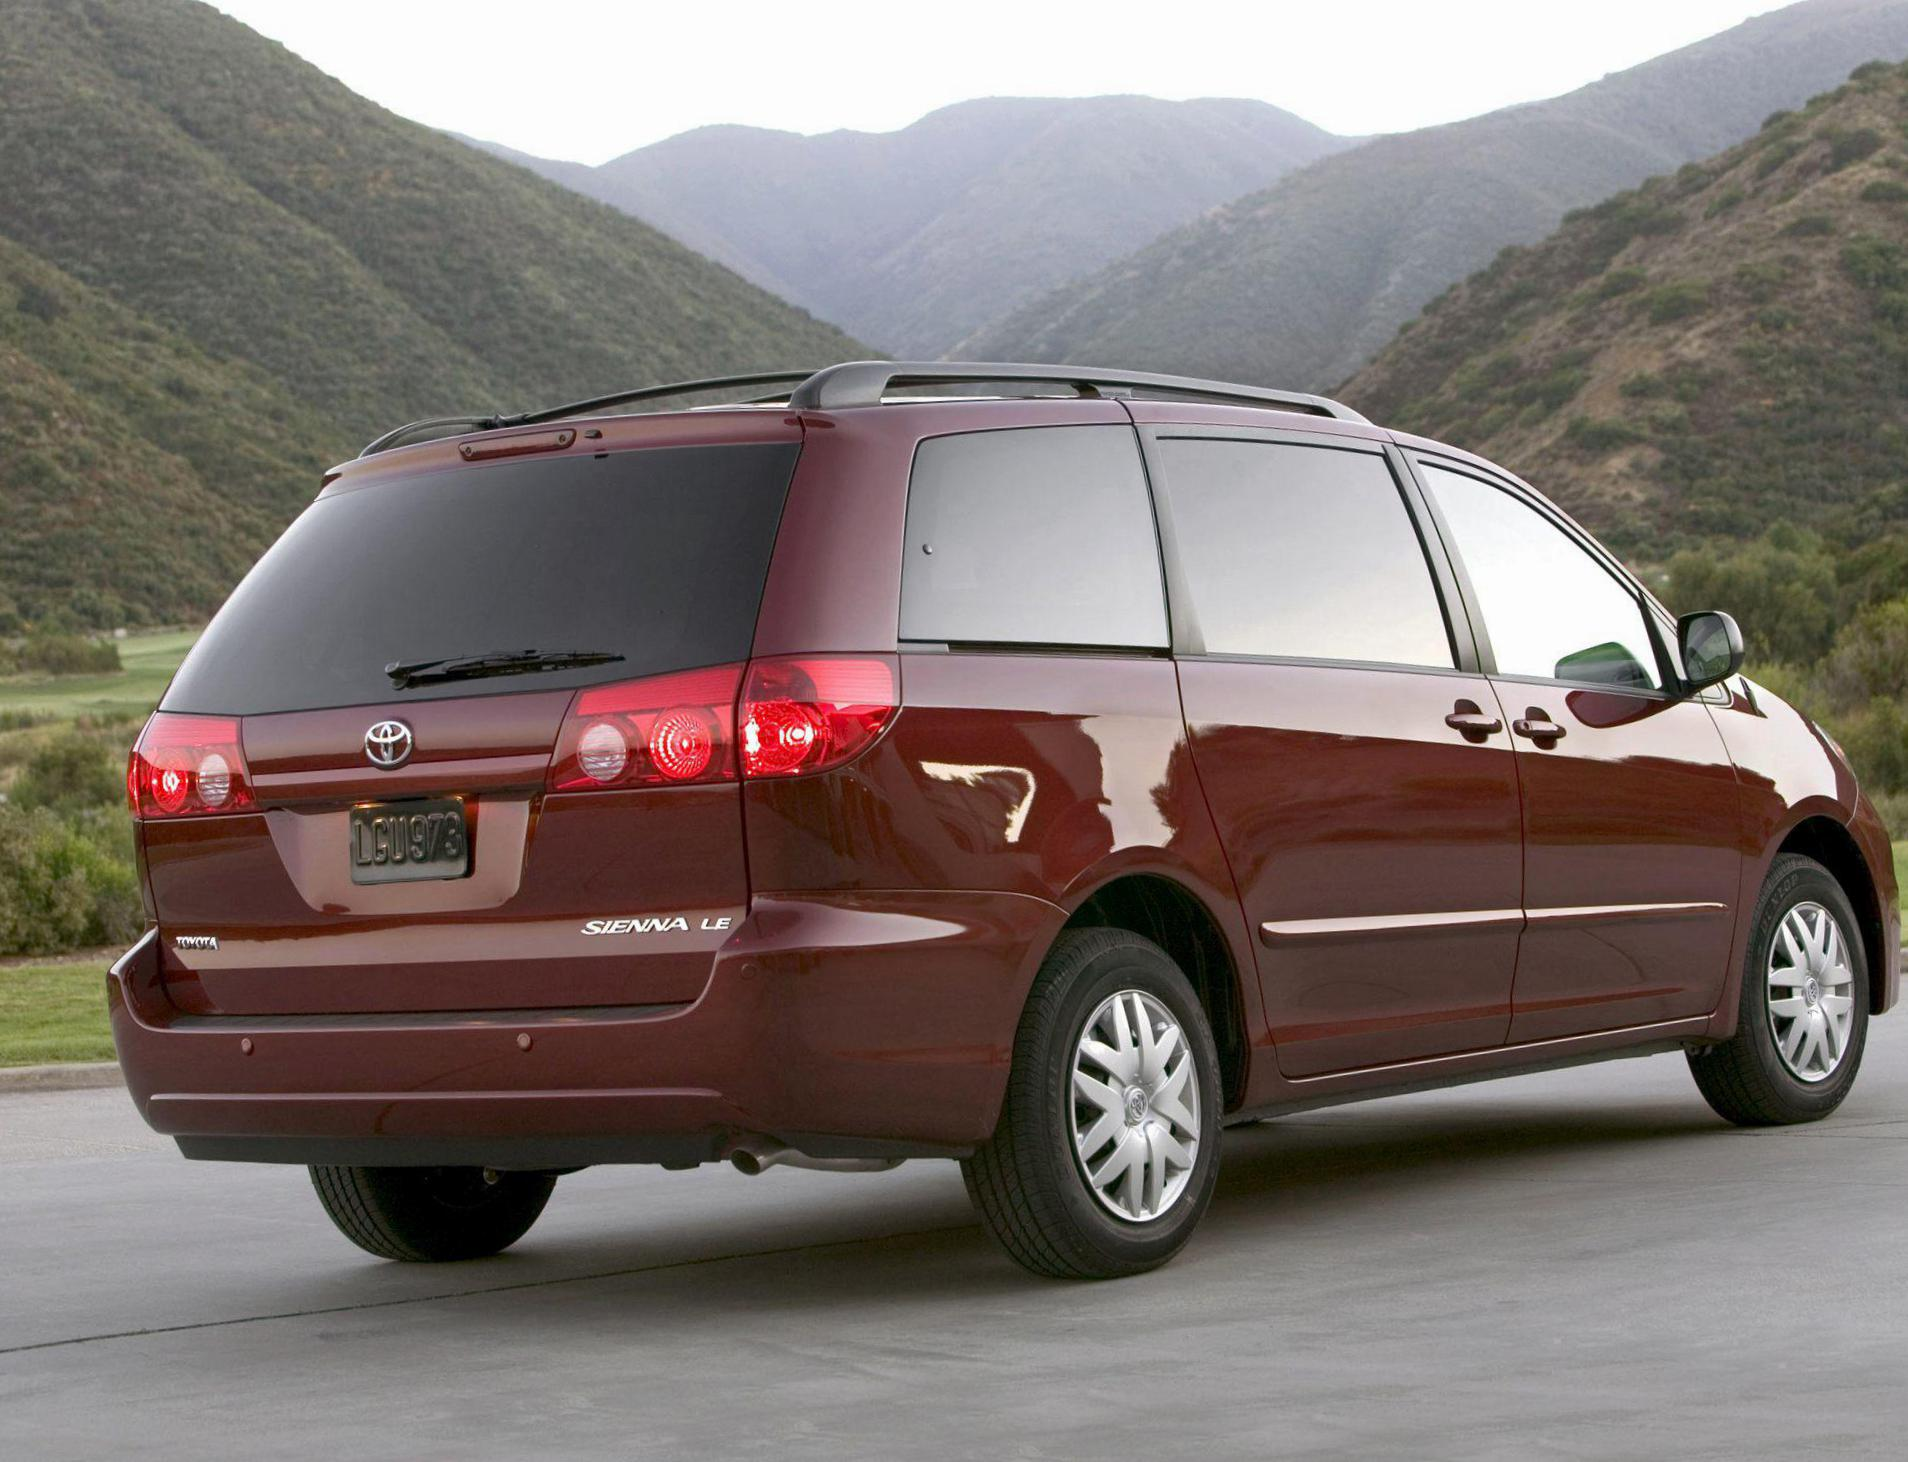 toyota sienna photos and specs photo toyota sienna sale and 24 perfect photos of toyota sienna. Black Bedroom Furniture Sets. Home Design Ideas